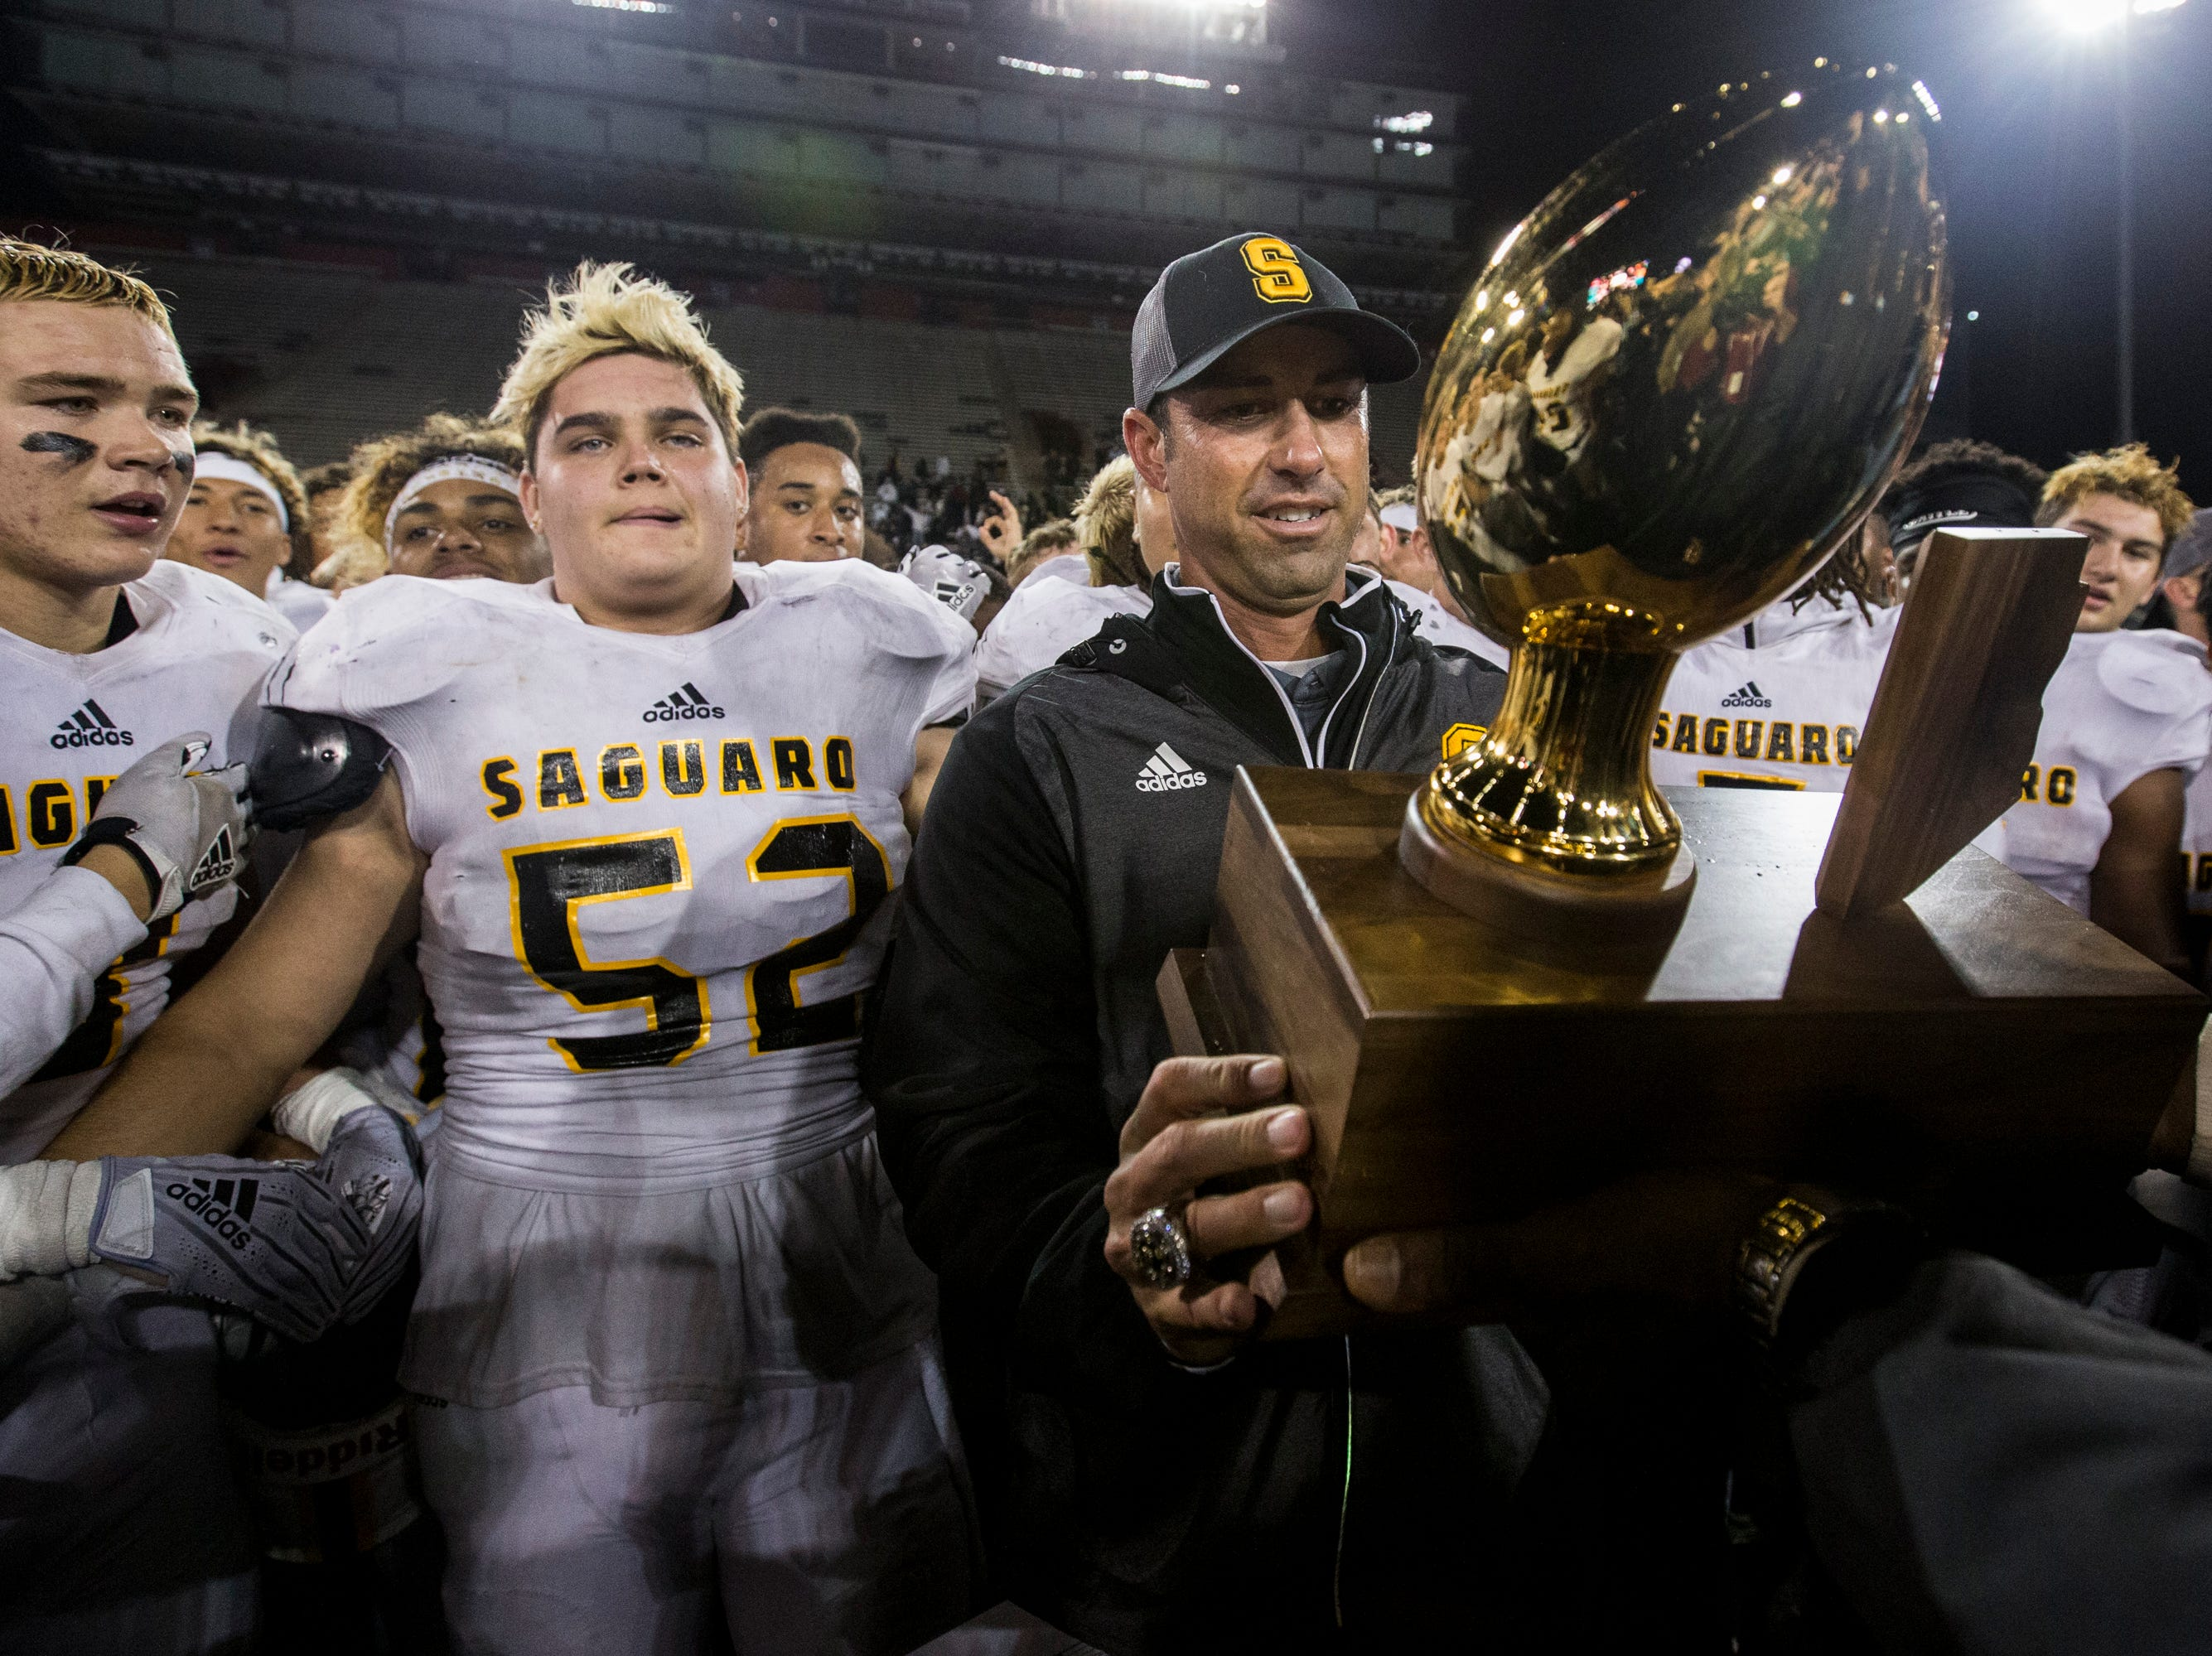 Saguaro head coach Jason Mohns accepts the trophy after defeating Salpointe for the 4A State Championship on Friday, Nov. 30, 2018, at Arizona Stadium in Tucson, Ariz. Saguaro won, 42-16.